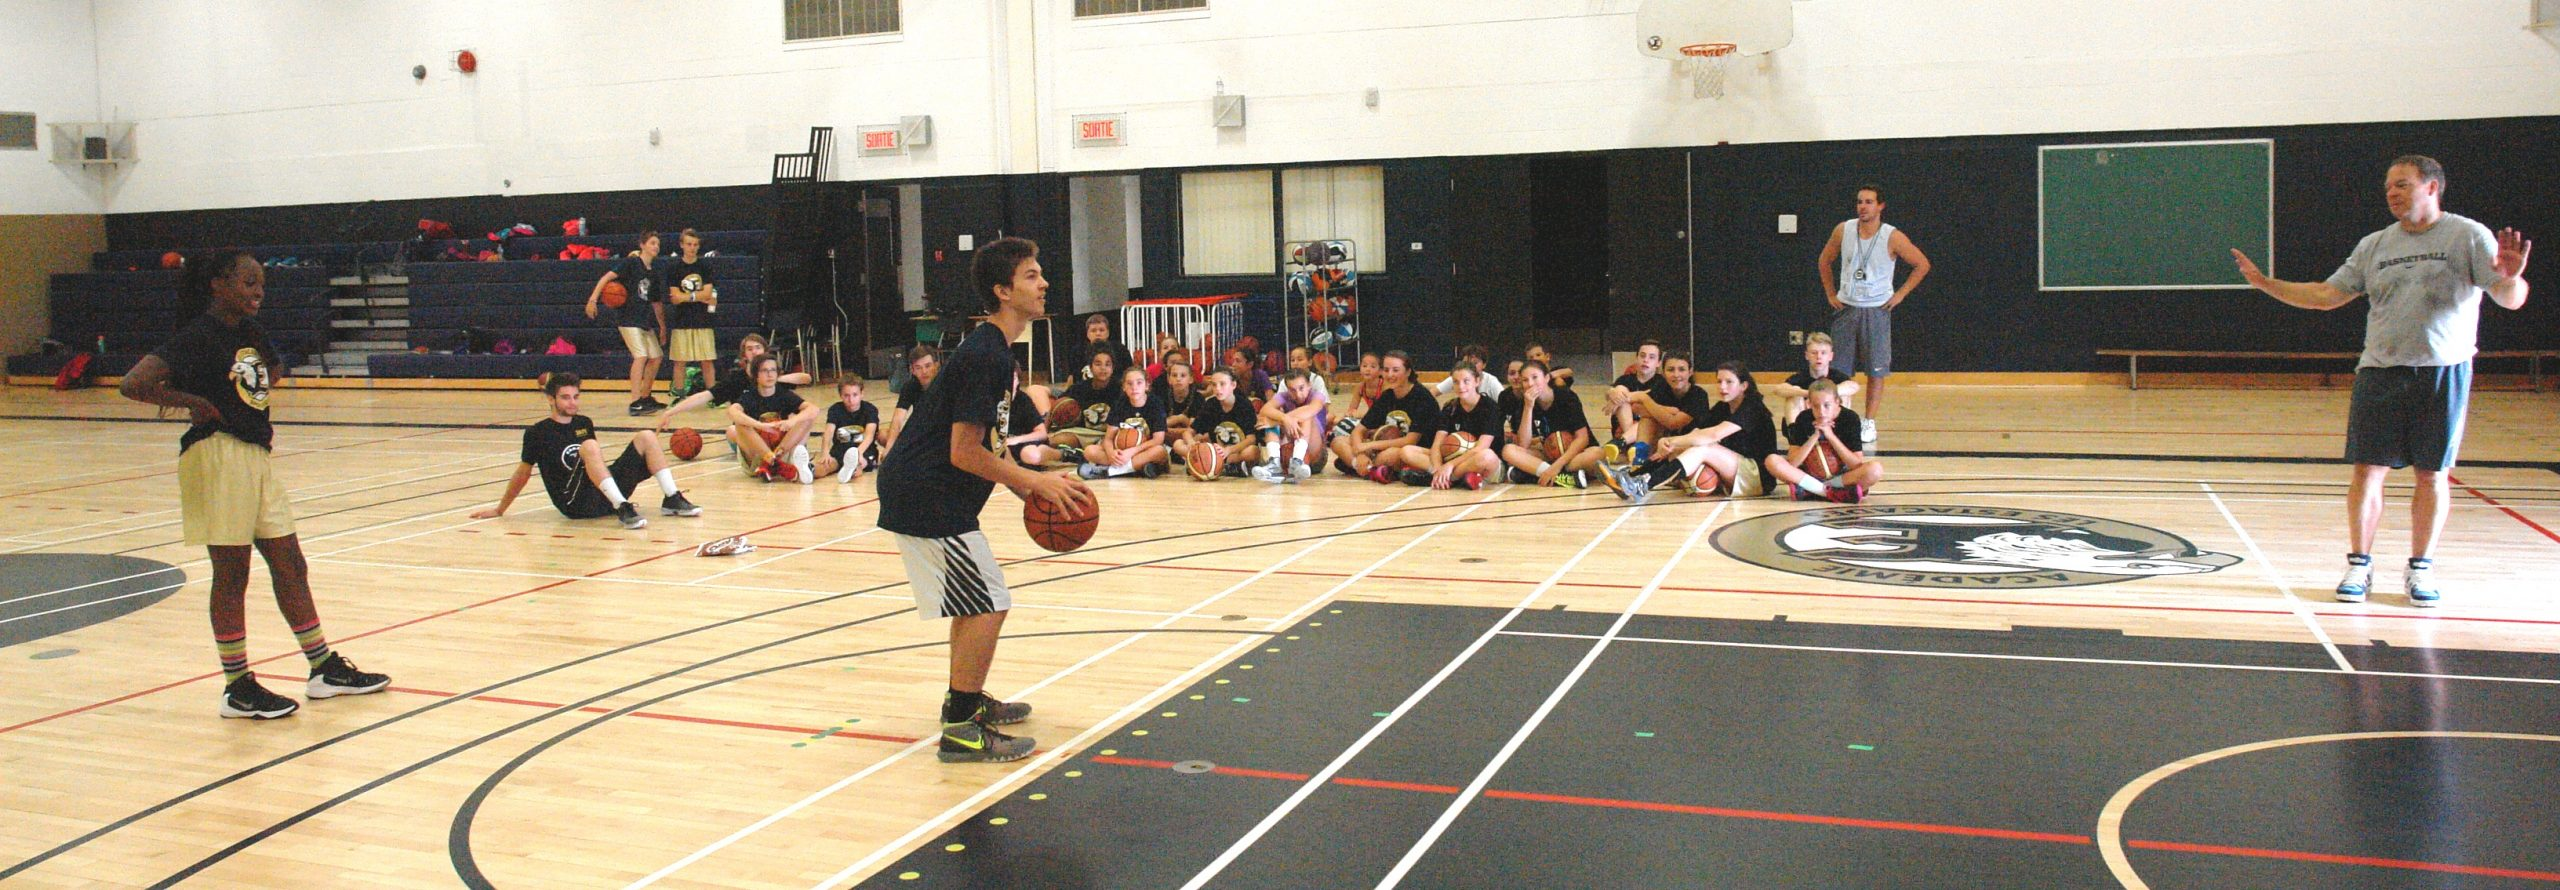 Camp basketball VITAL 2016 - 52